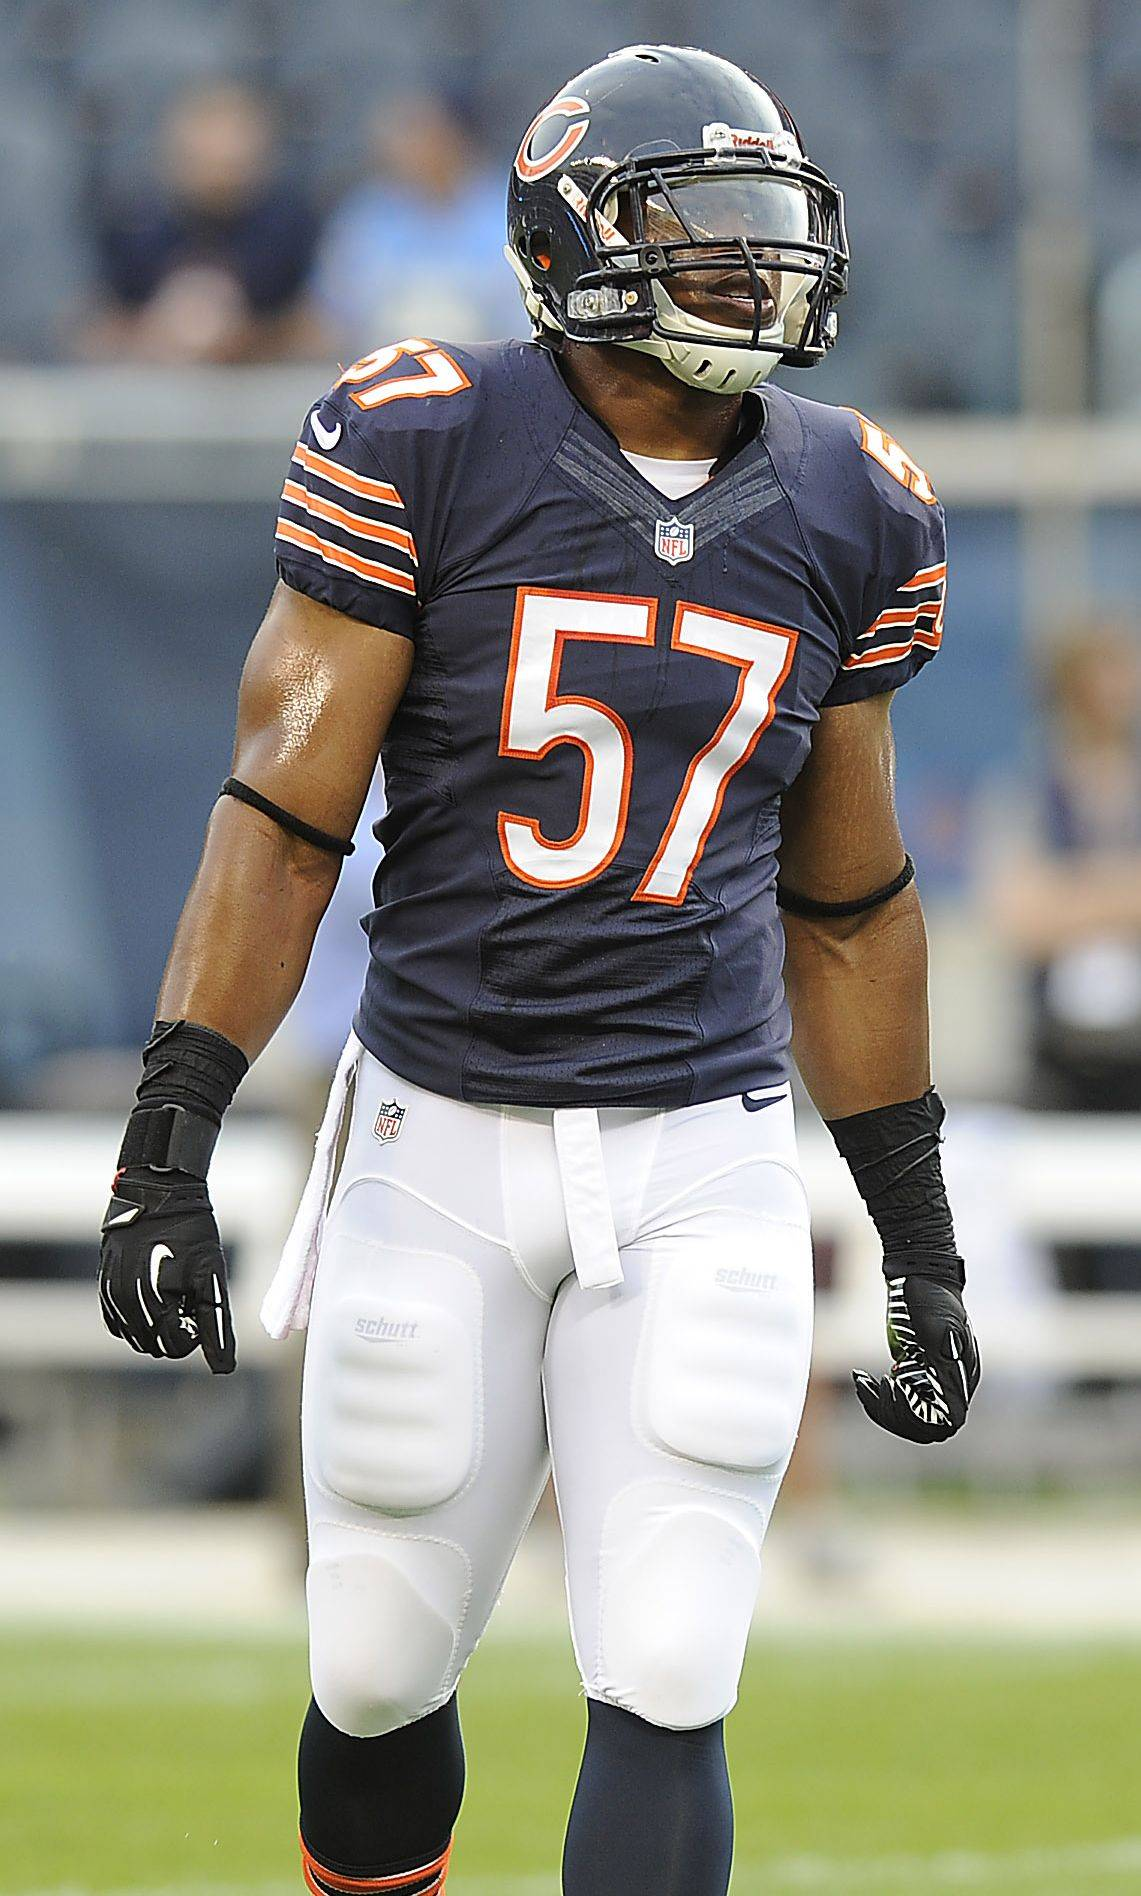 It�s early, but linebacker Jonathan Bostic has shown flashes of great ability in the Bears� first two preseason games.